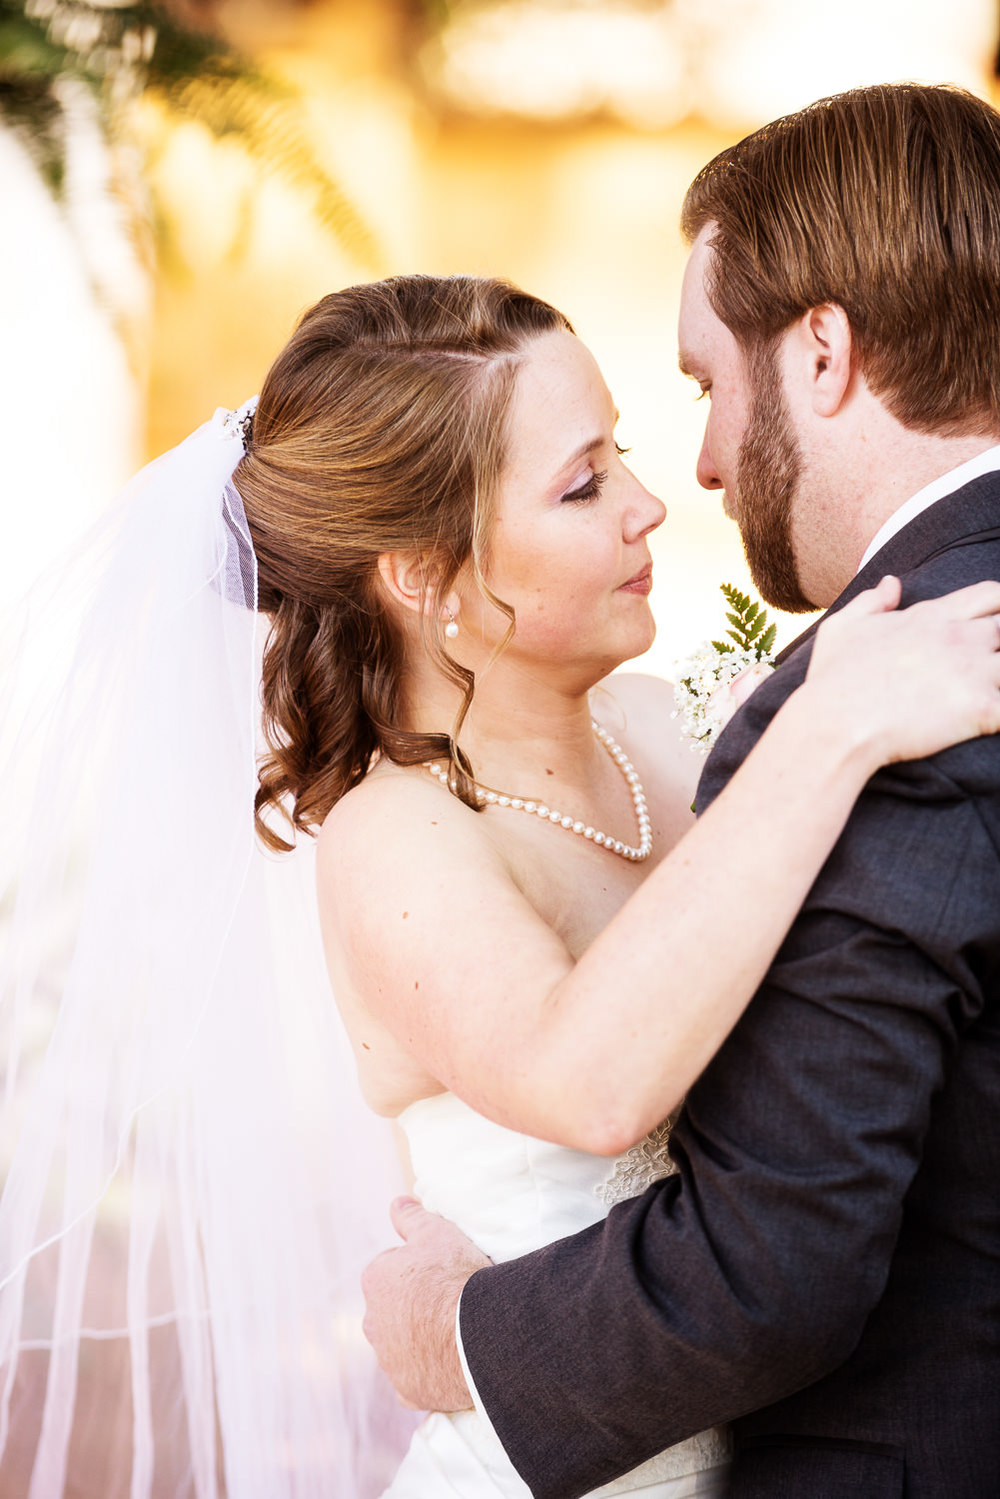 f27-Photography-Ojai-Wedding-February-2014-Leaning-In-For-First-Kiss